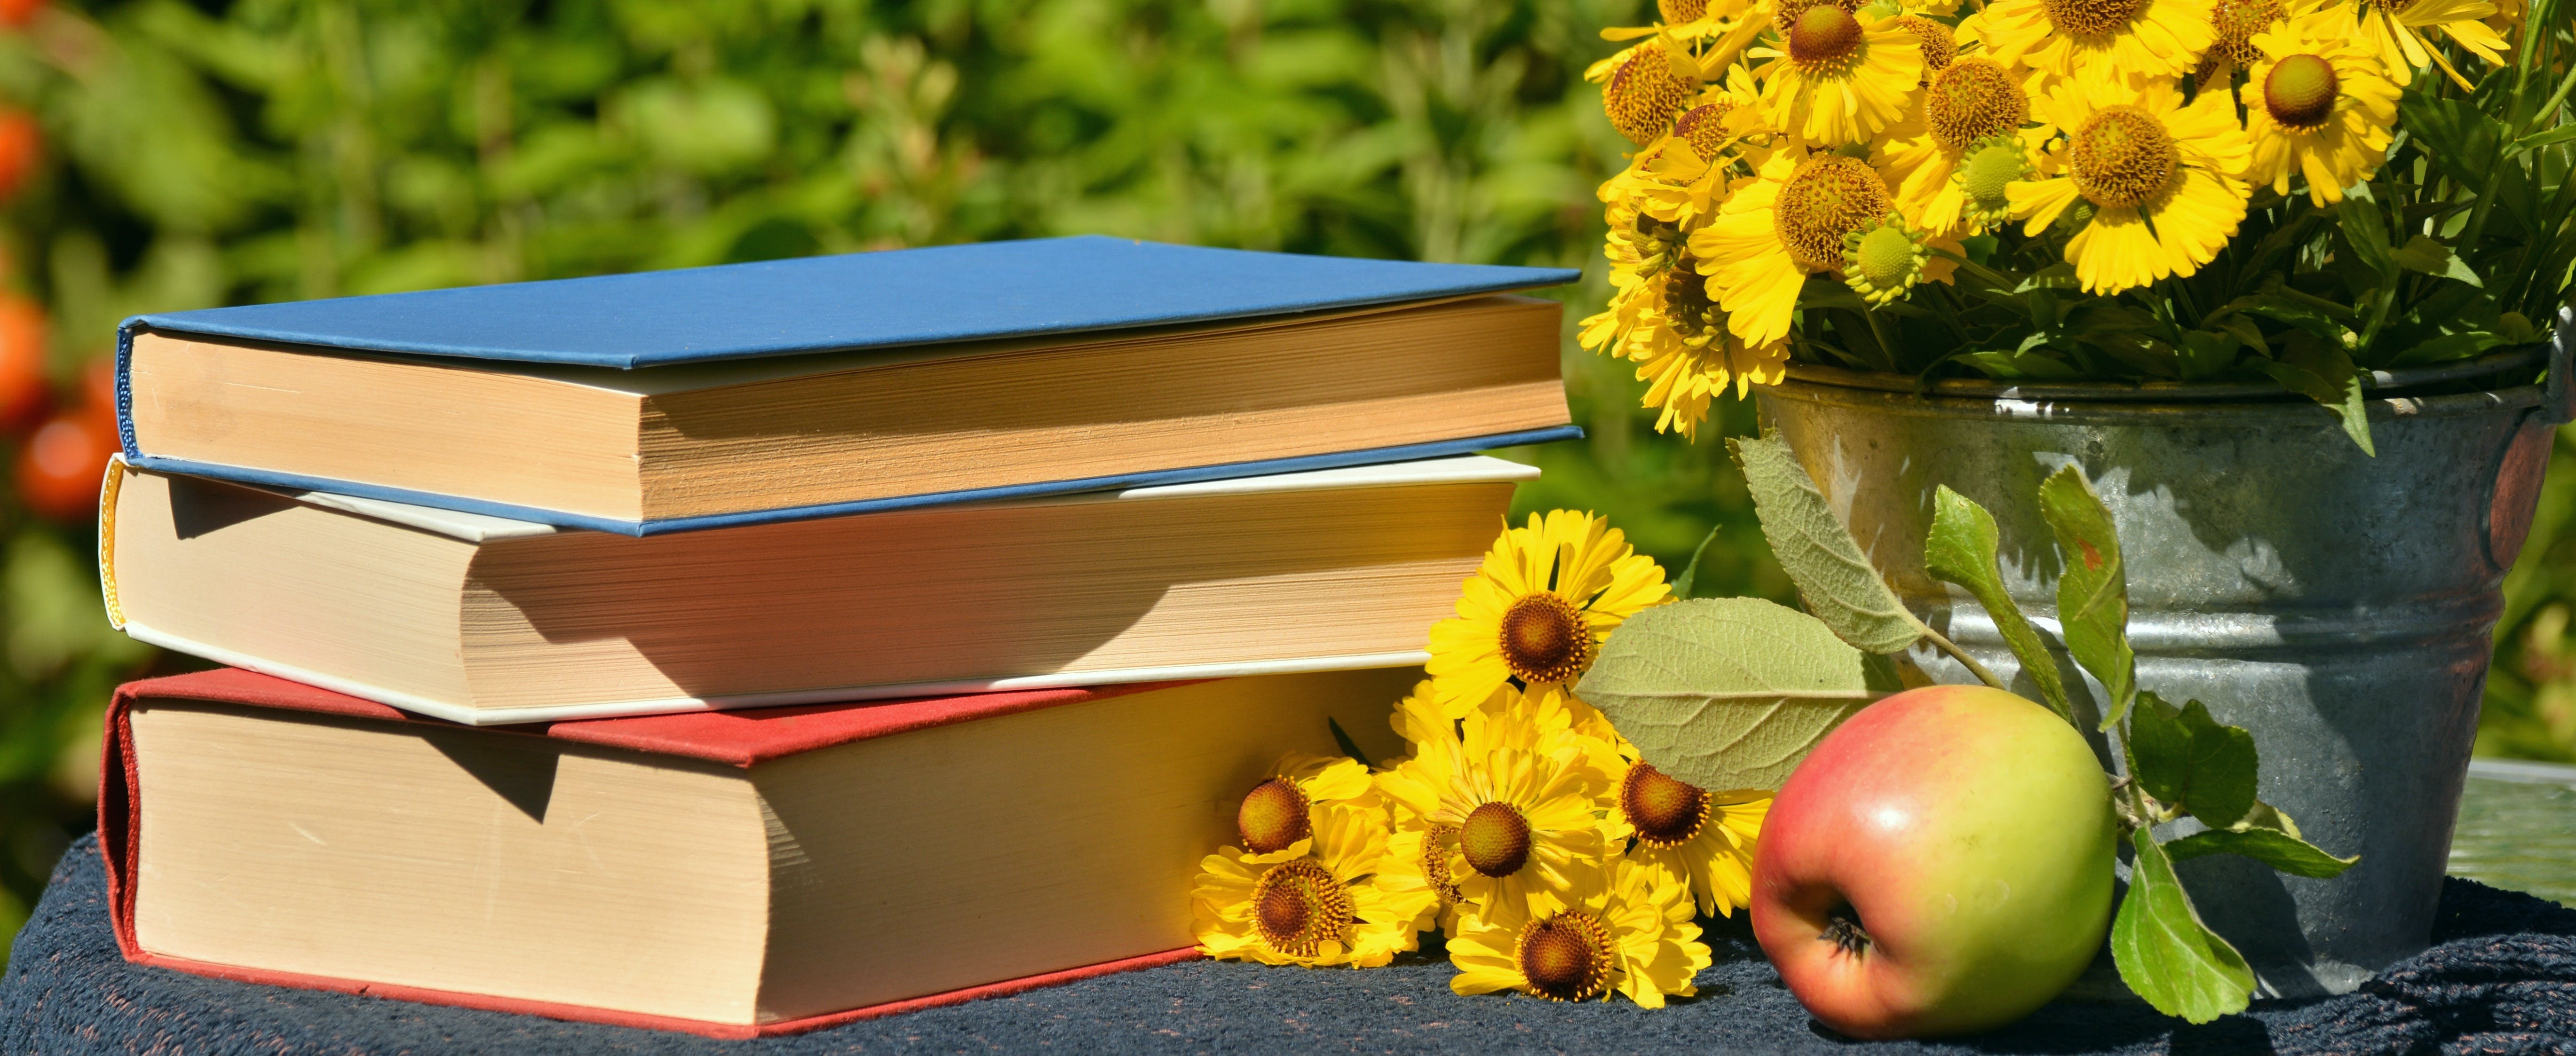 Three Books Beside Yellow Bouquet of Flowers